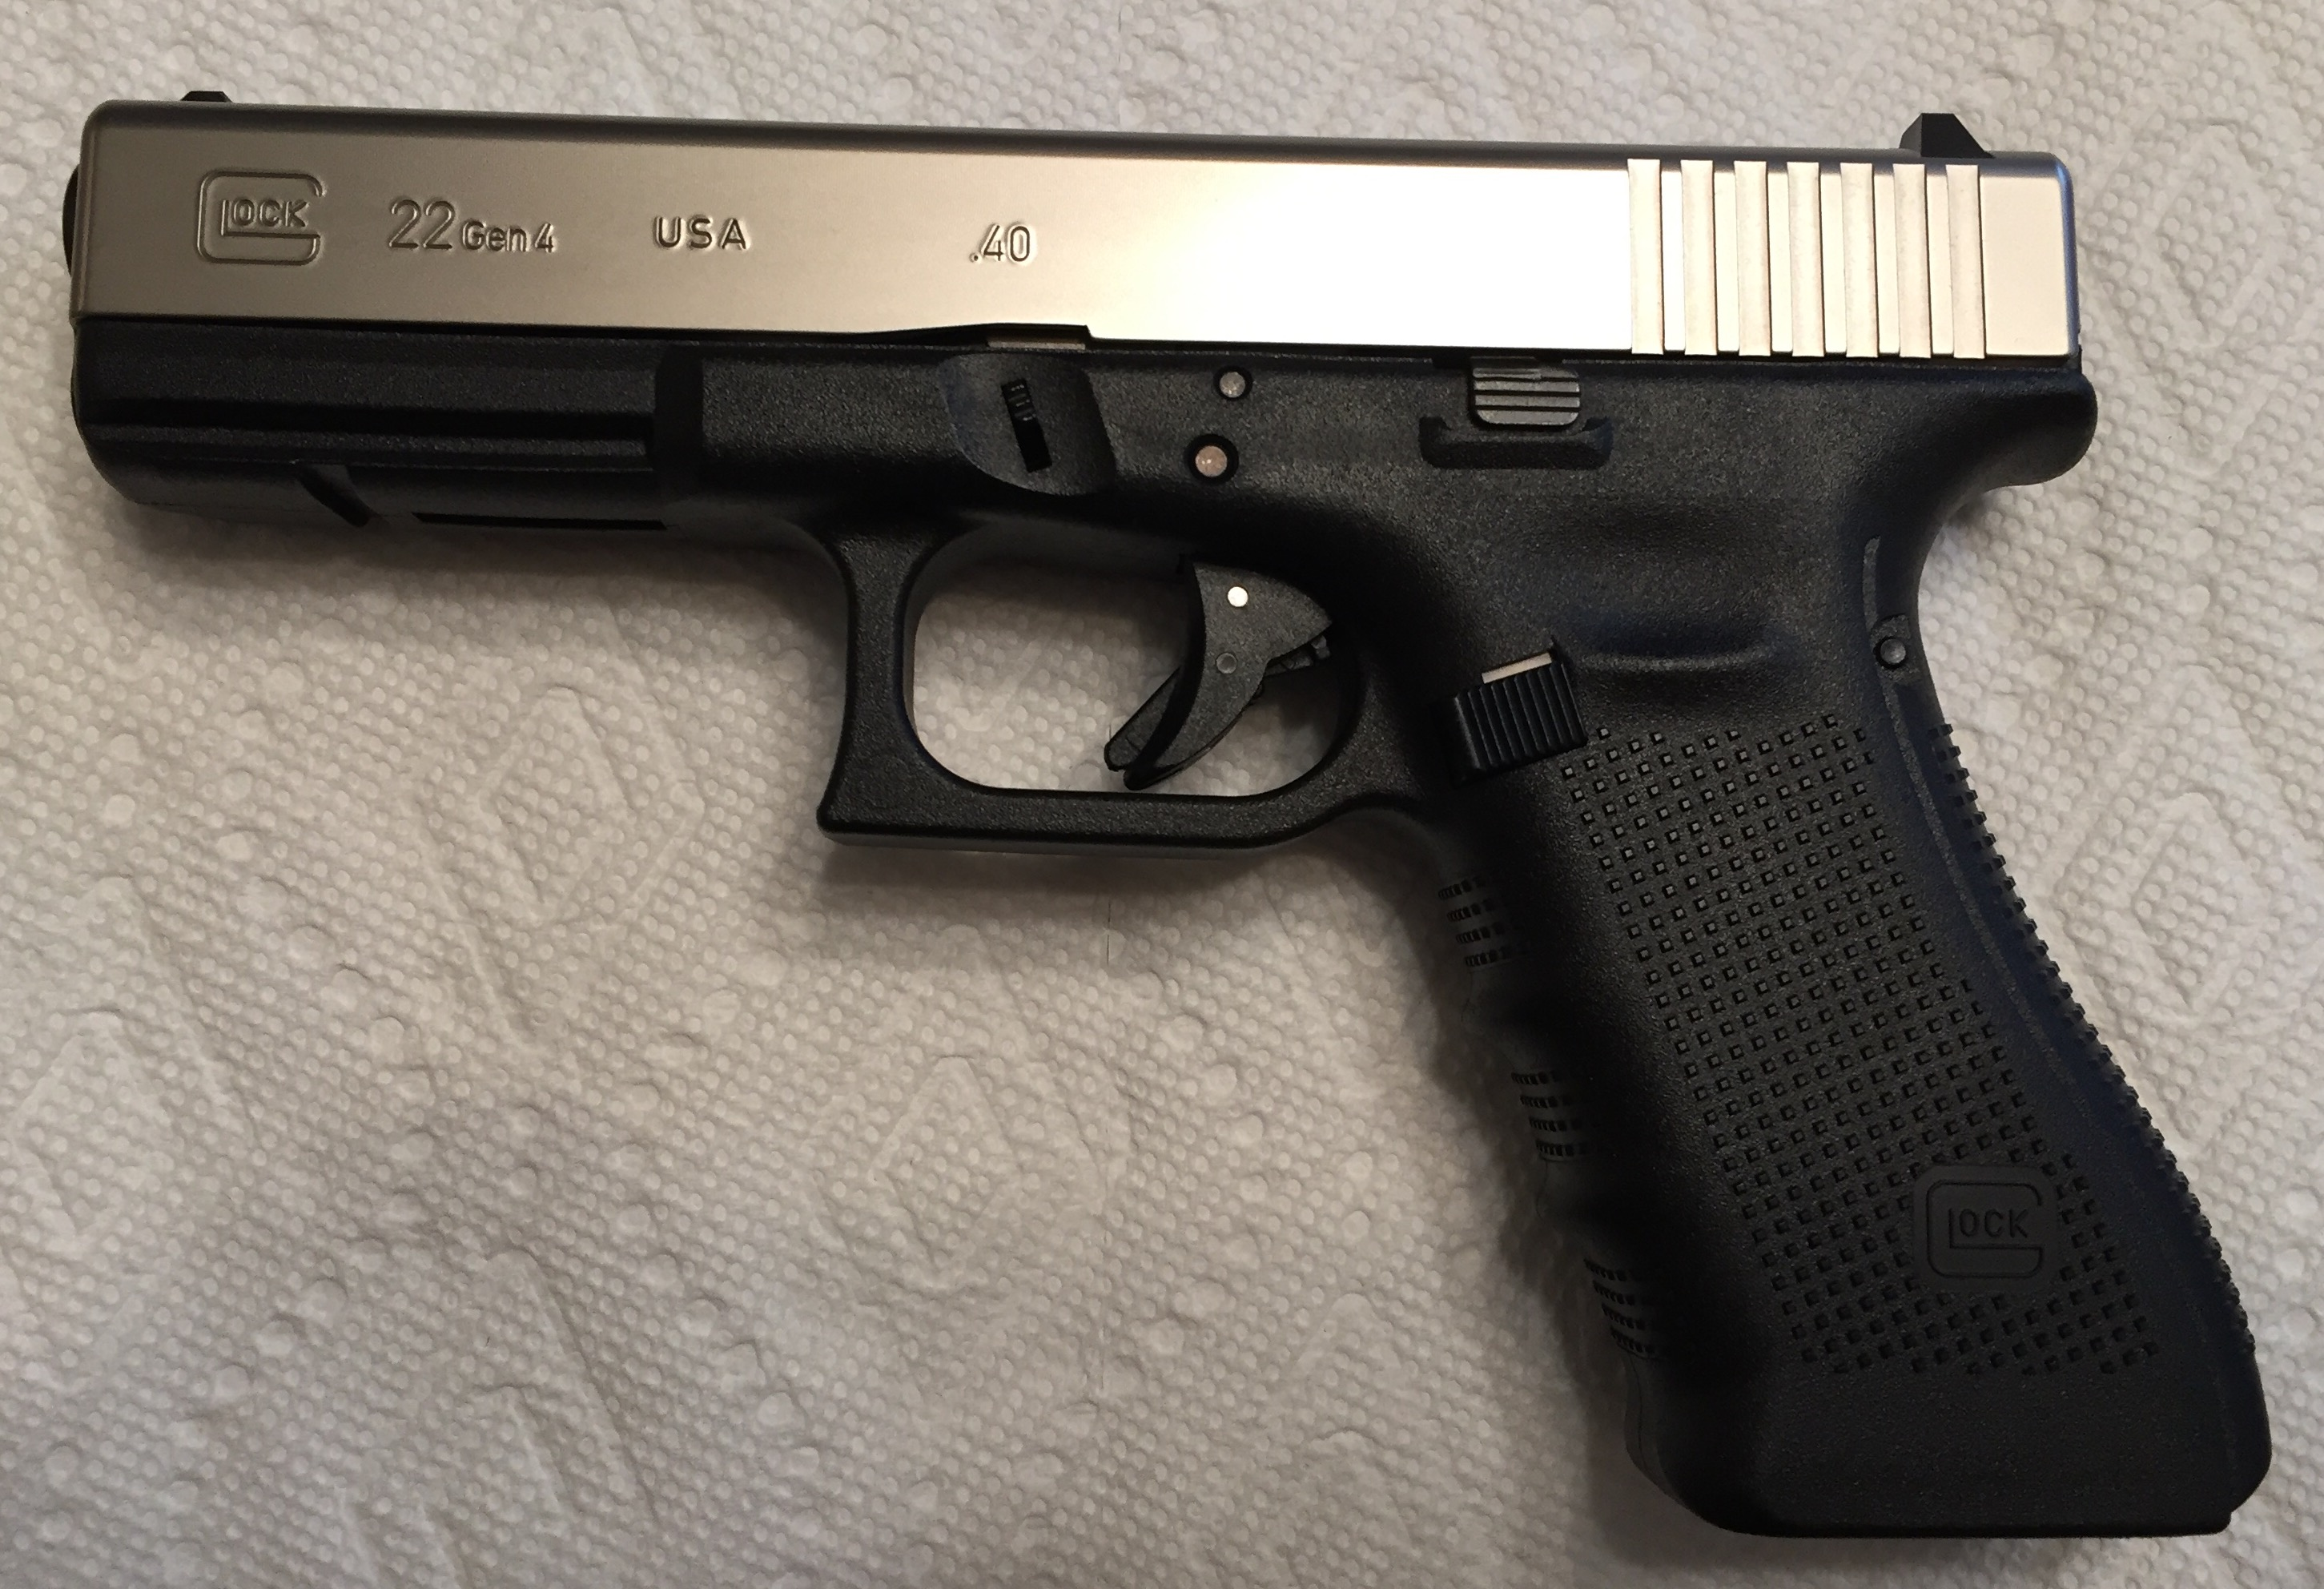 Glock 22 Gen 4 Cera-Plated, Like New in Box | Mississippi ...